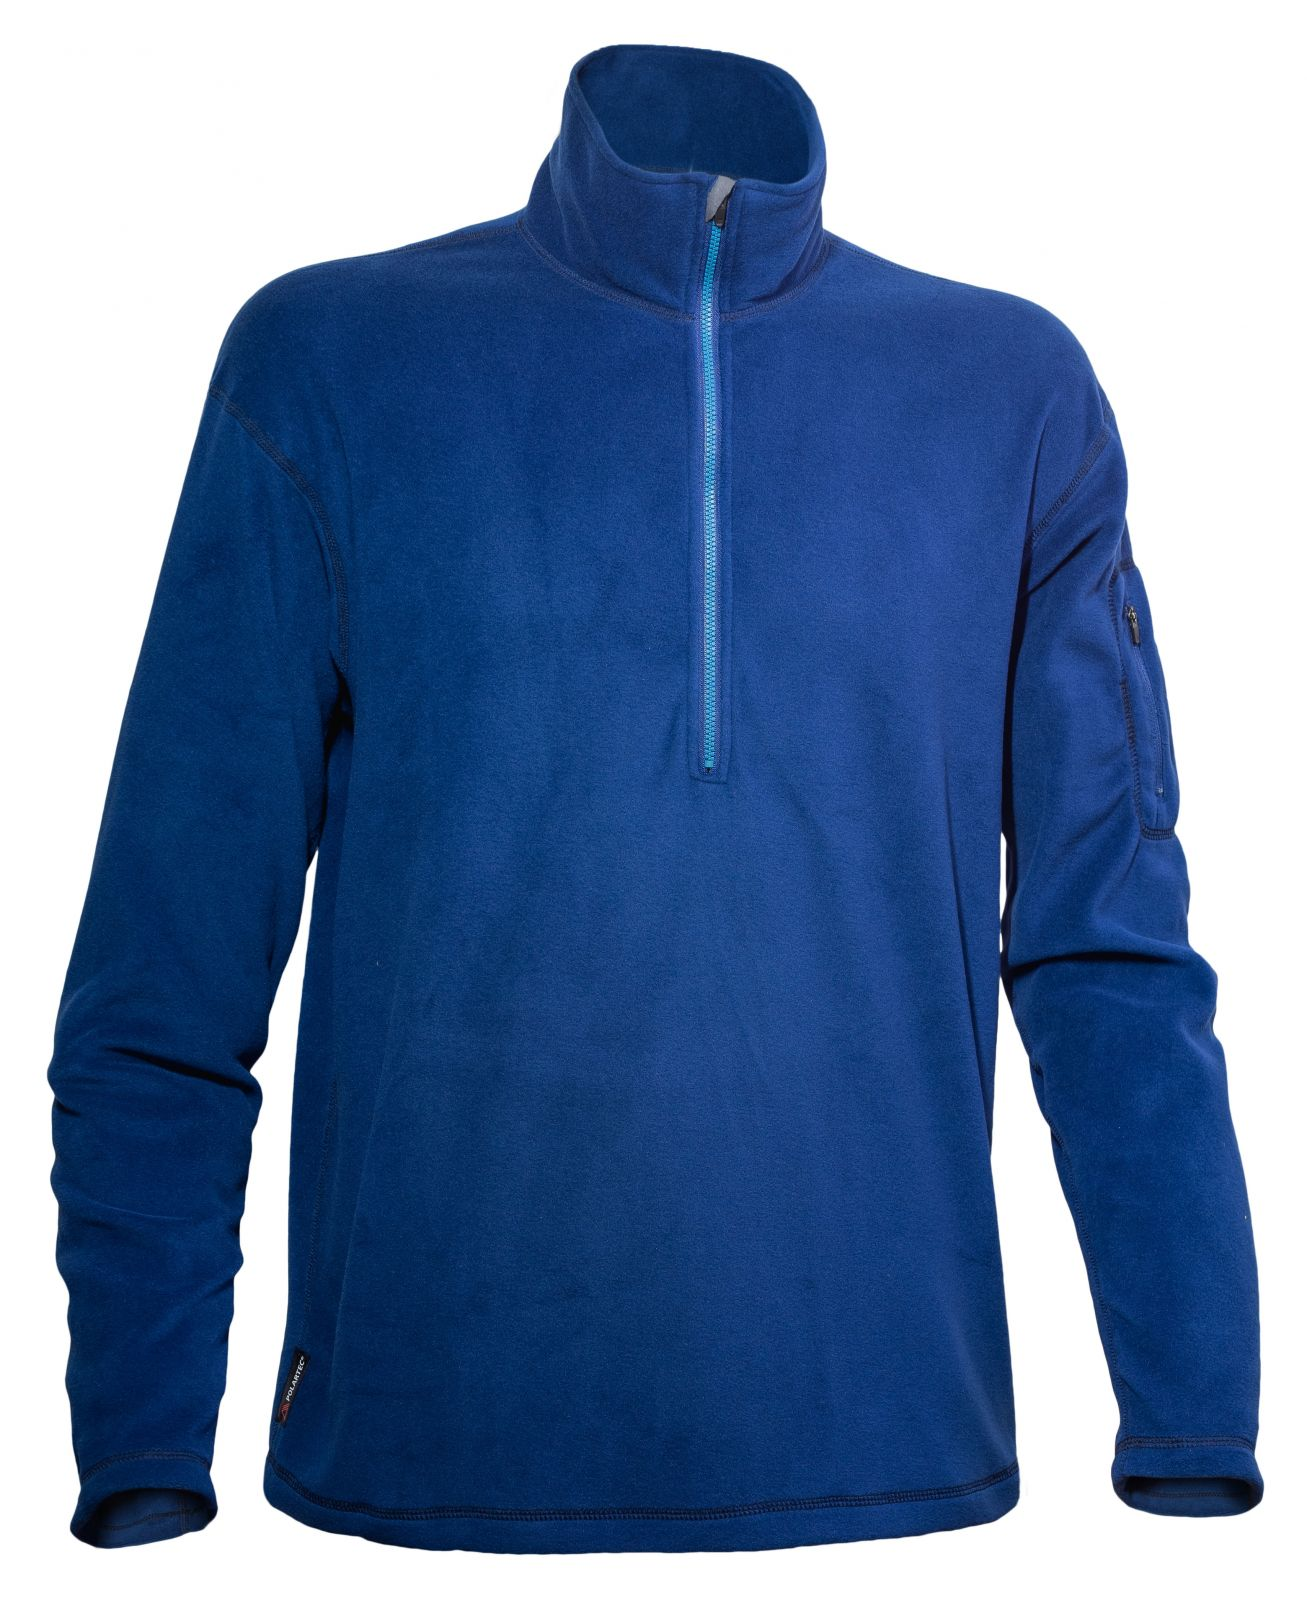 Warmpeace Boreas nautical mikina z Polartec Micro